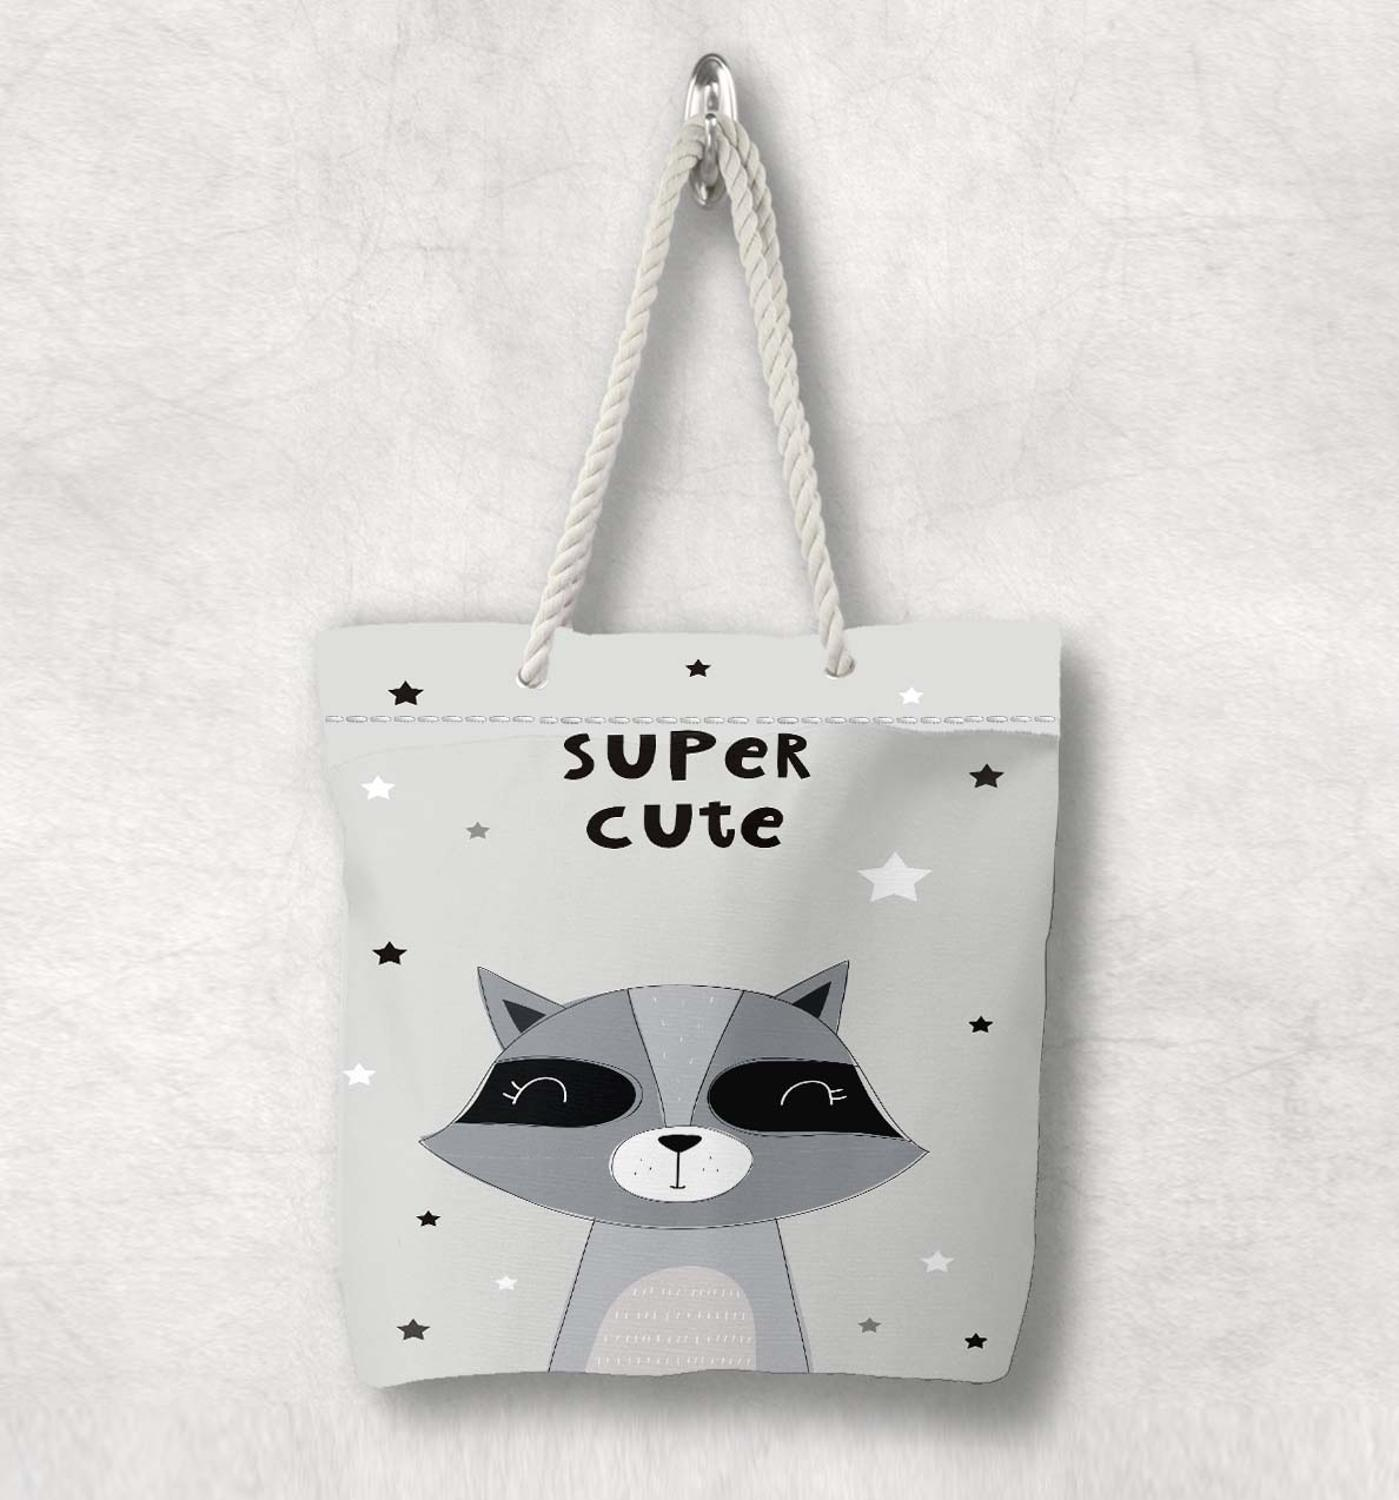 Else Gray White Super Cute Raccoon Nordic Animal White Rope Handle Canvas Bag  Cartoon Print Zippered Tote Bag Shoulder Bag